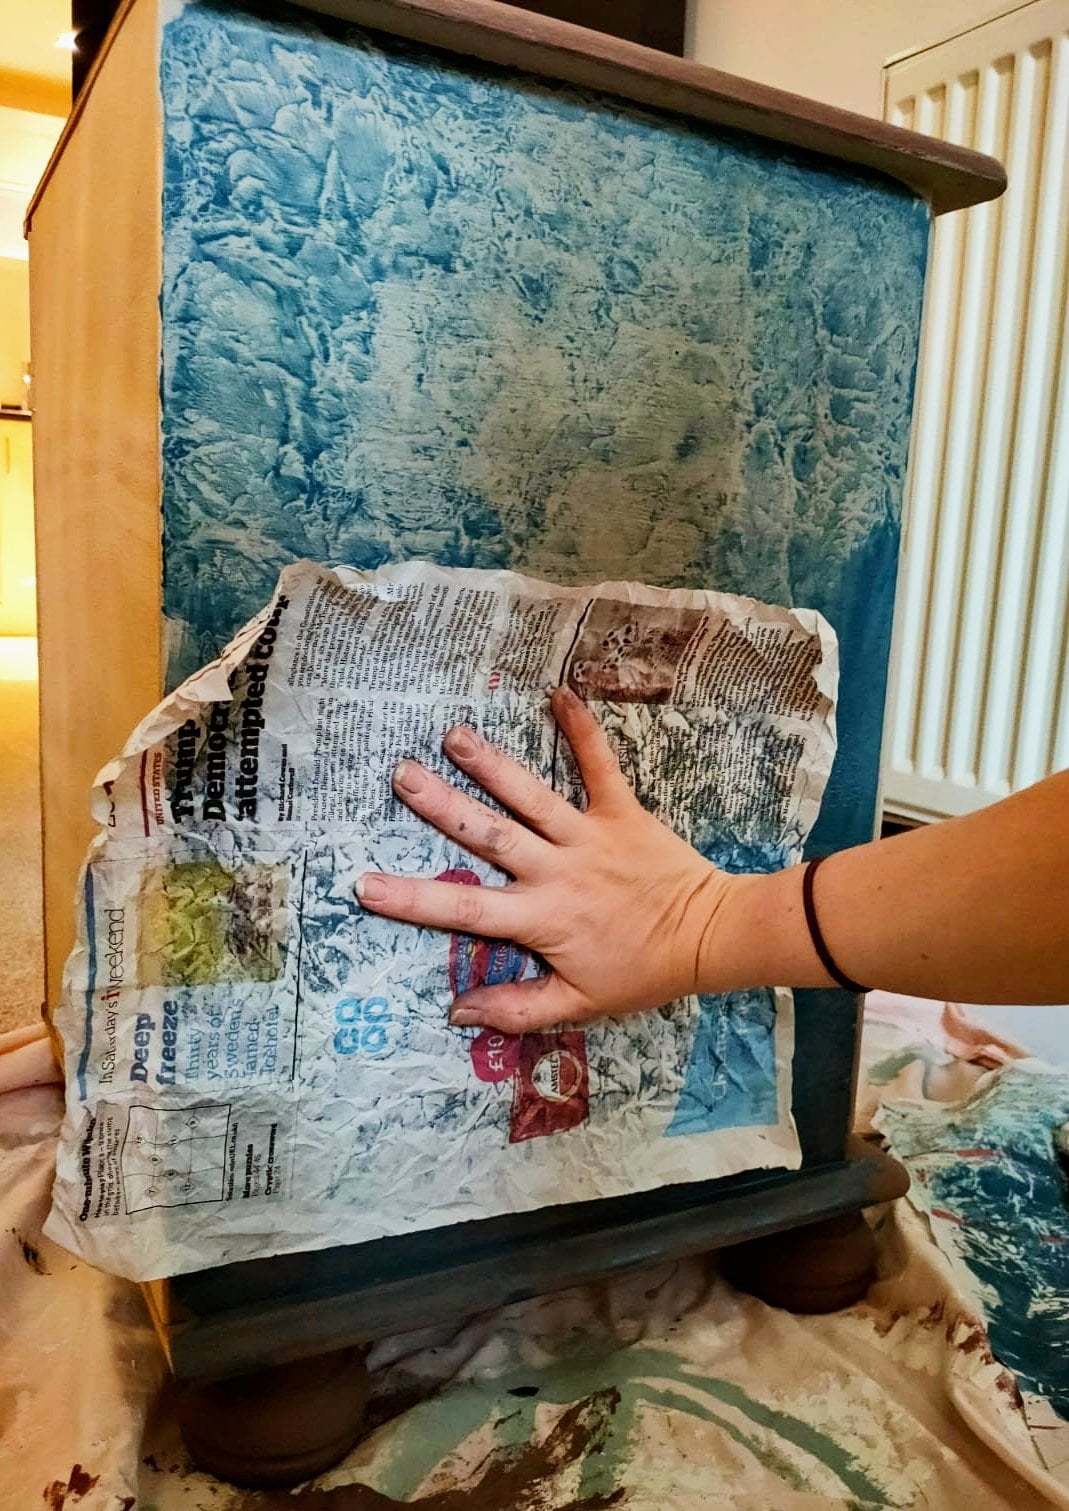 Hand holding newspaper page against drawers